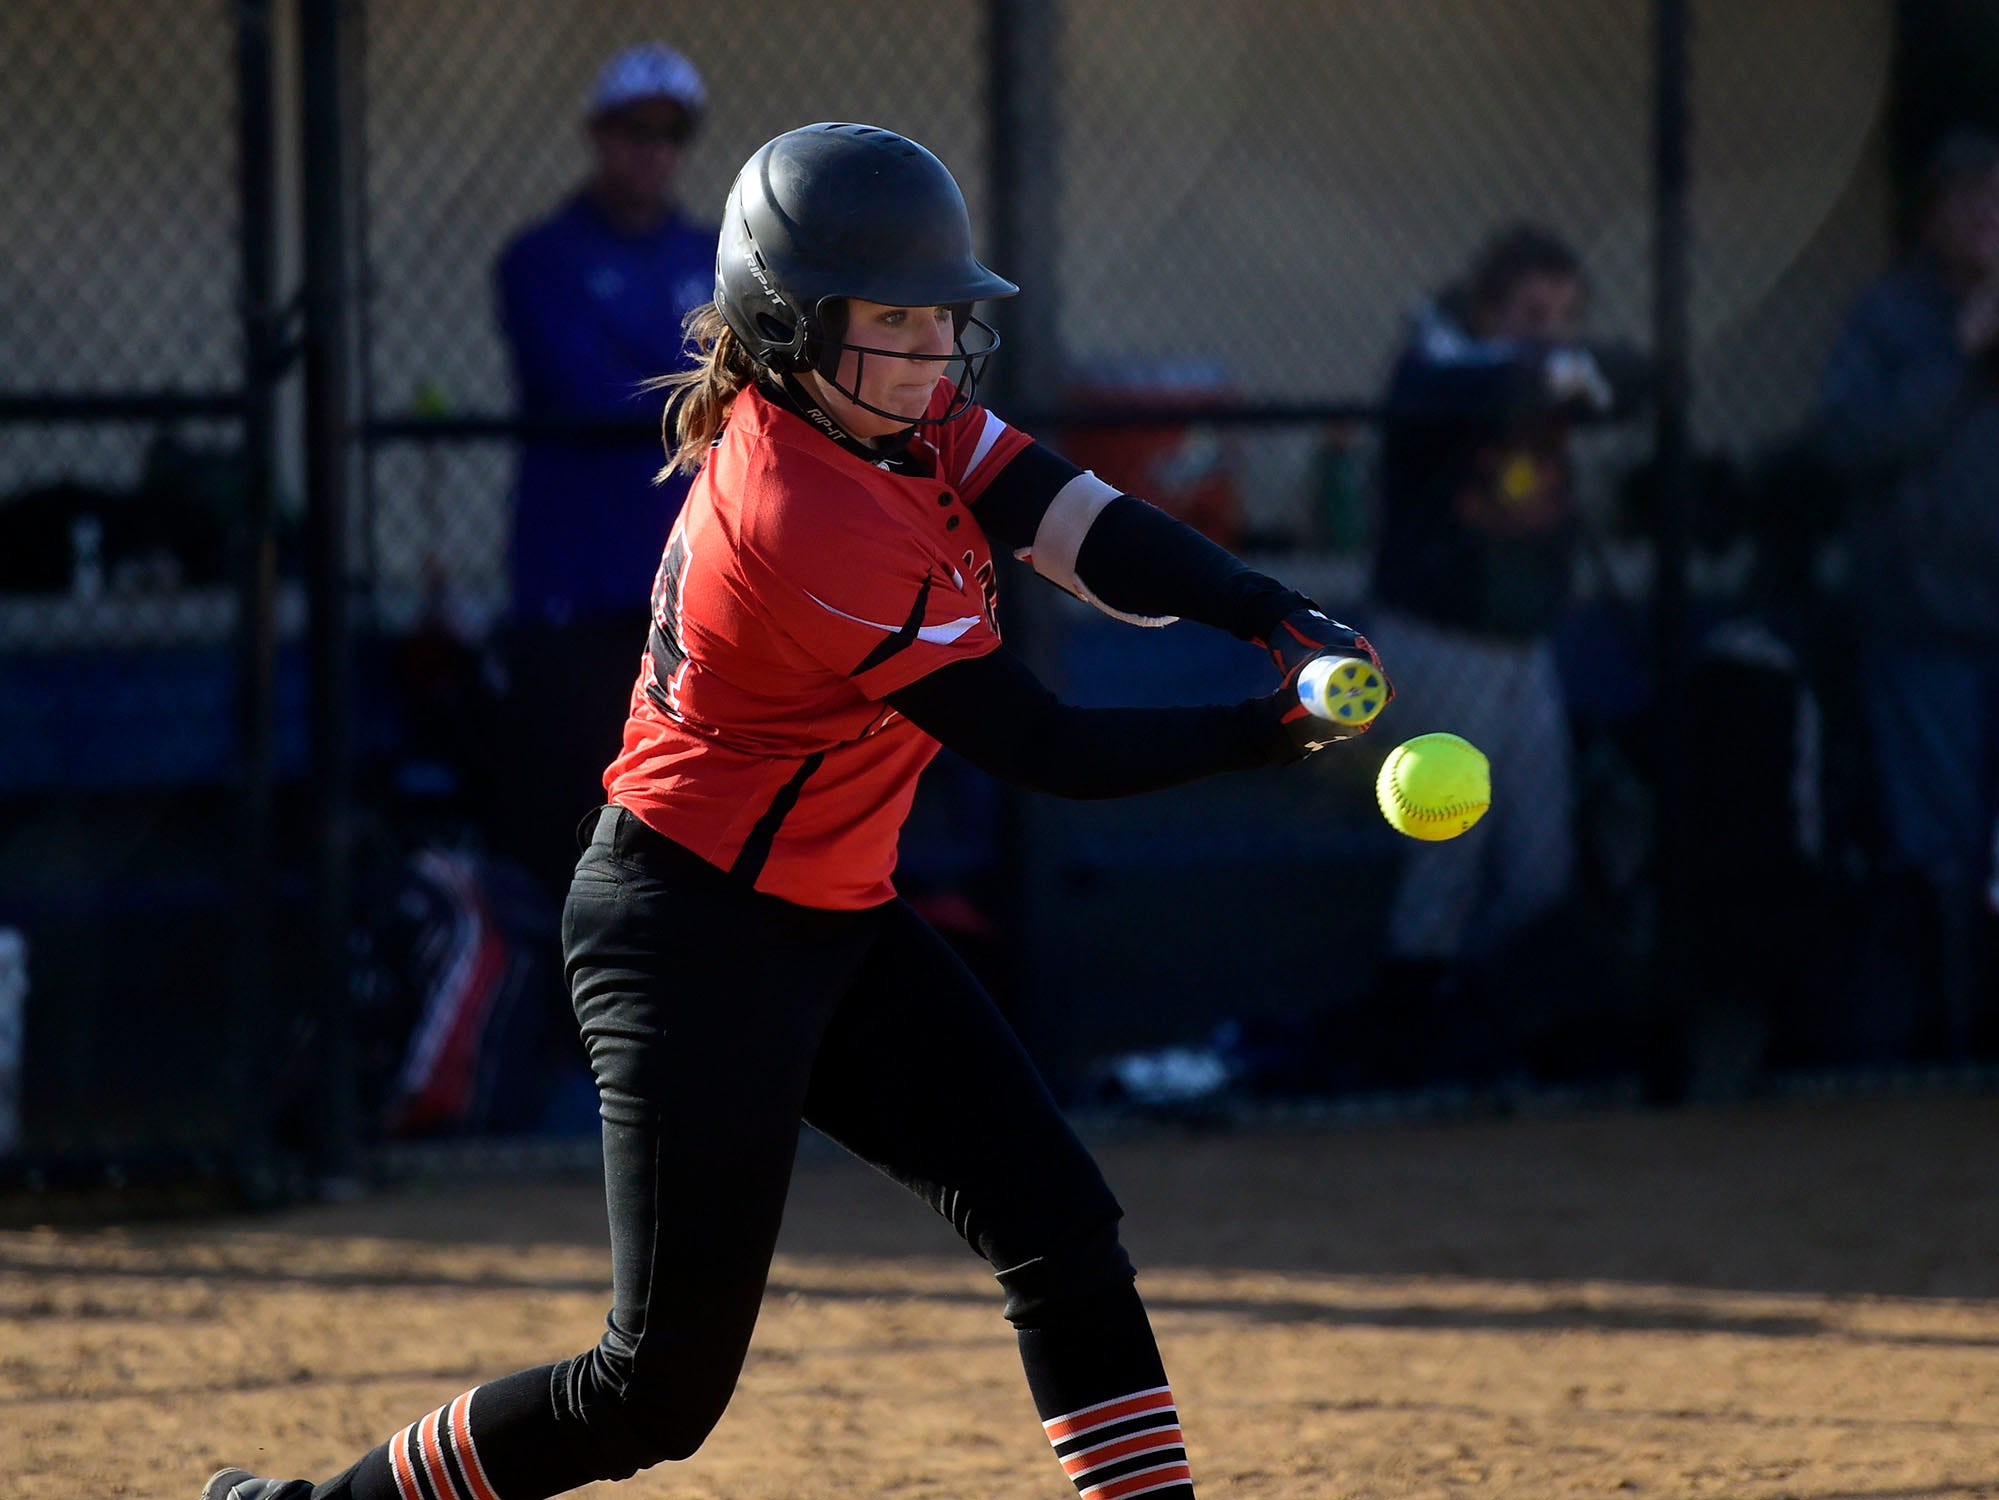 Northeastern's Megan Sweitzer swings at a pitch Wednesday, April 3, 2019.